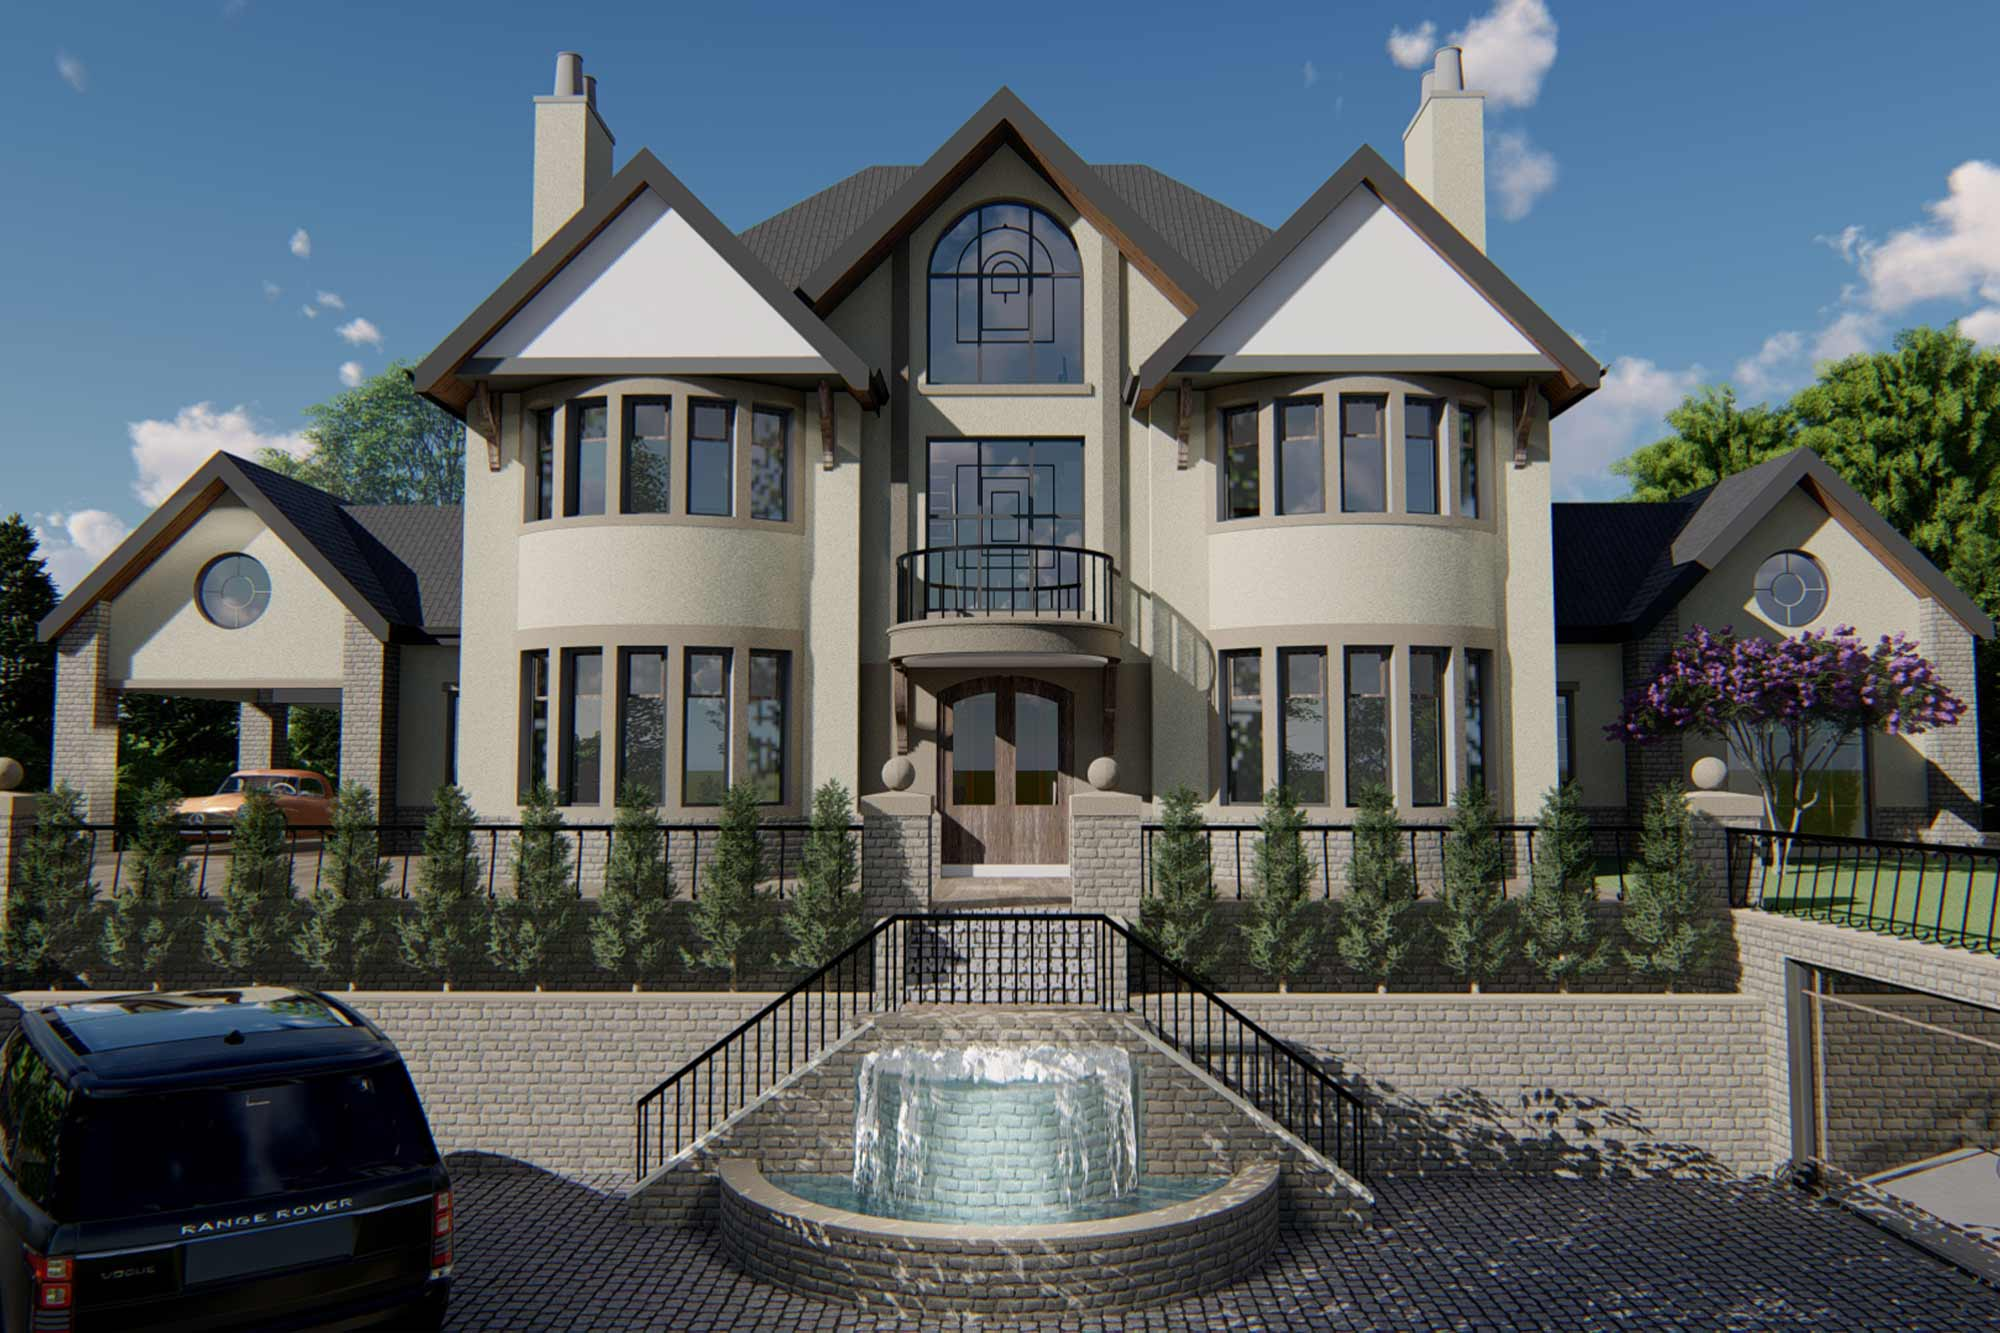 Edwardian mansion swimming pool extension, facelift and re-model in Lancaster, Lancashire